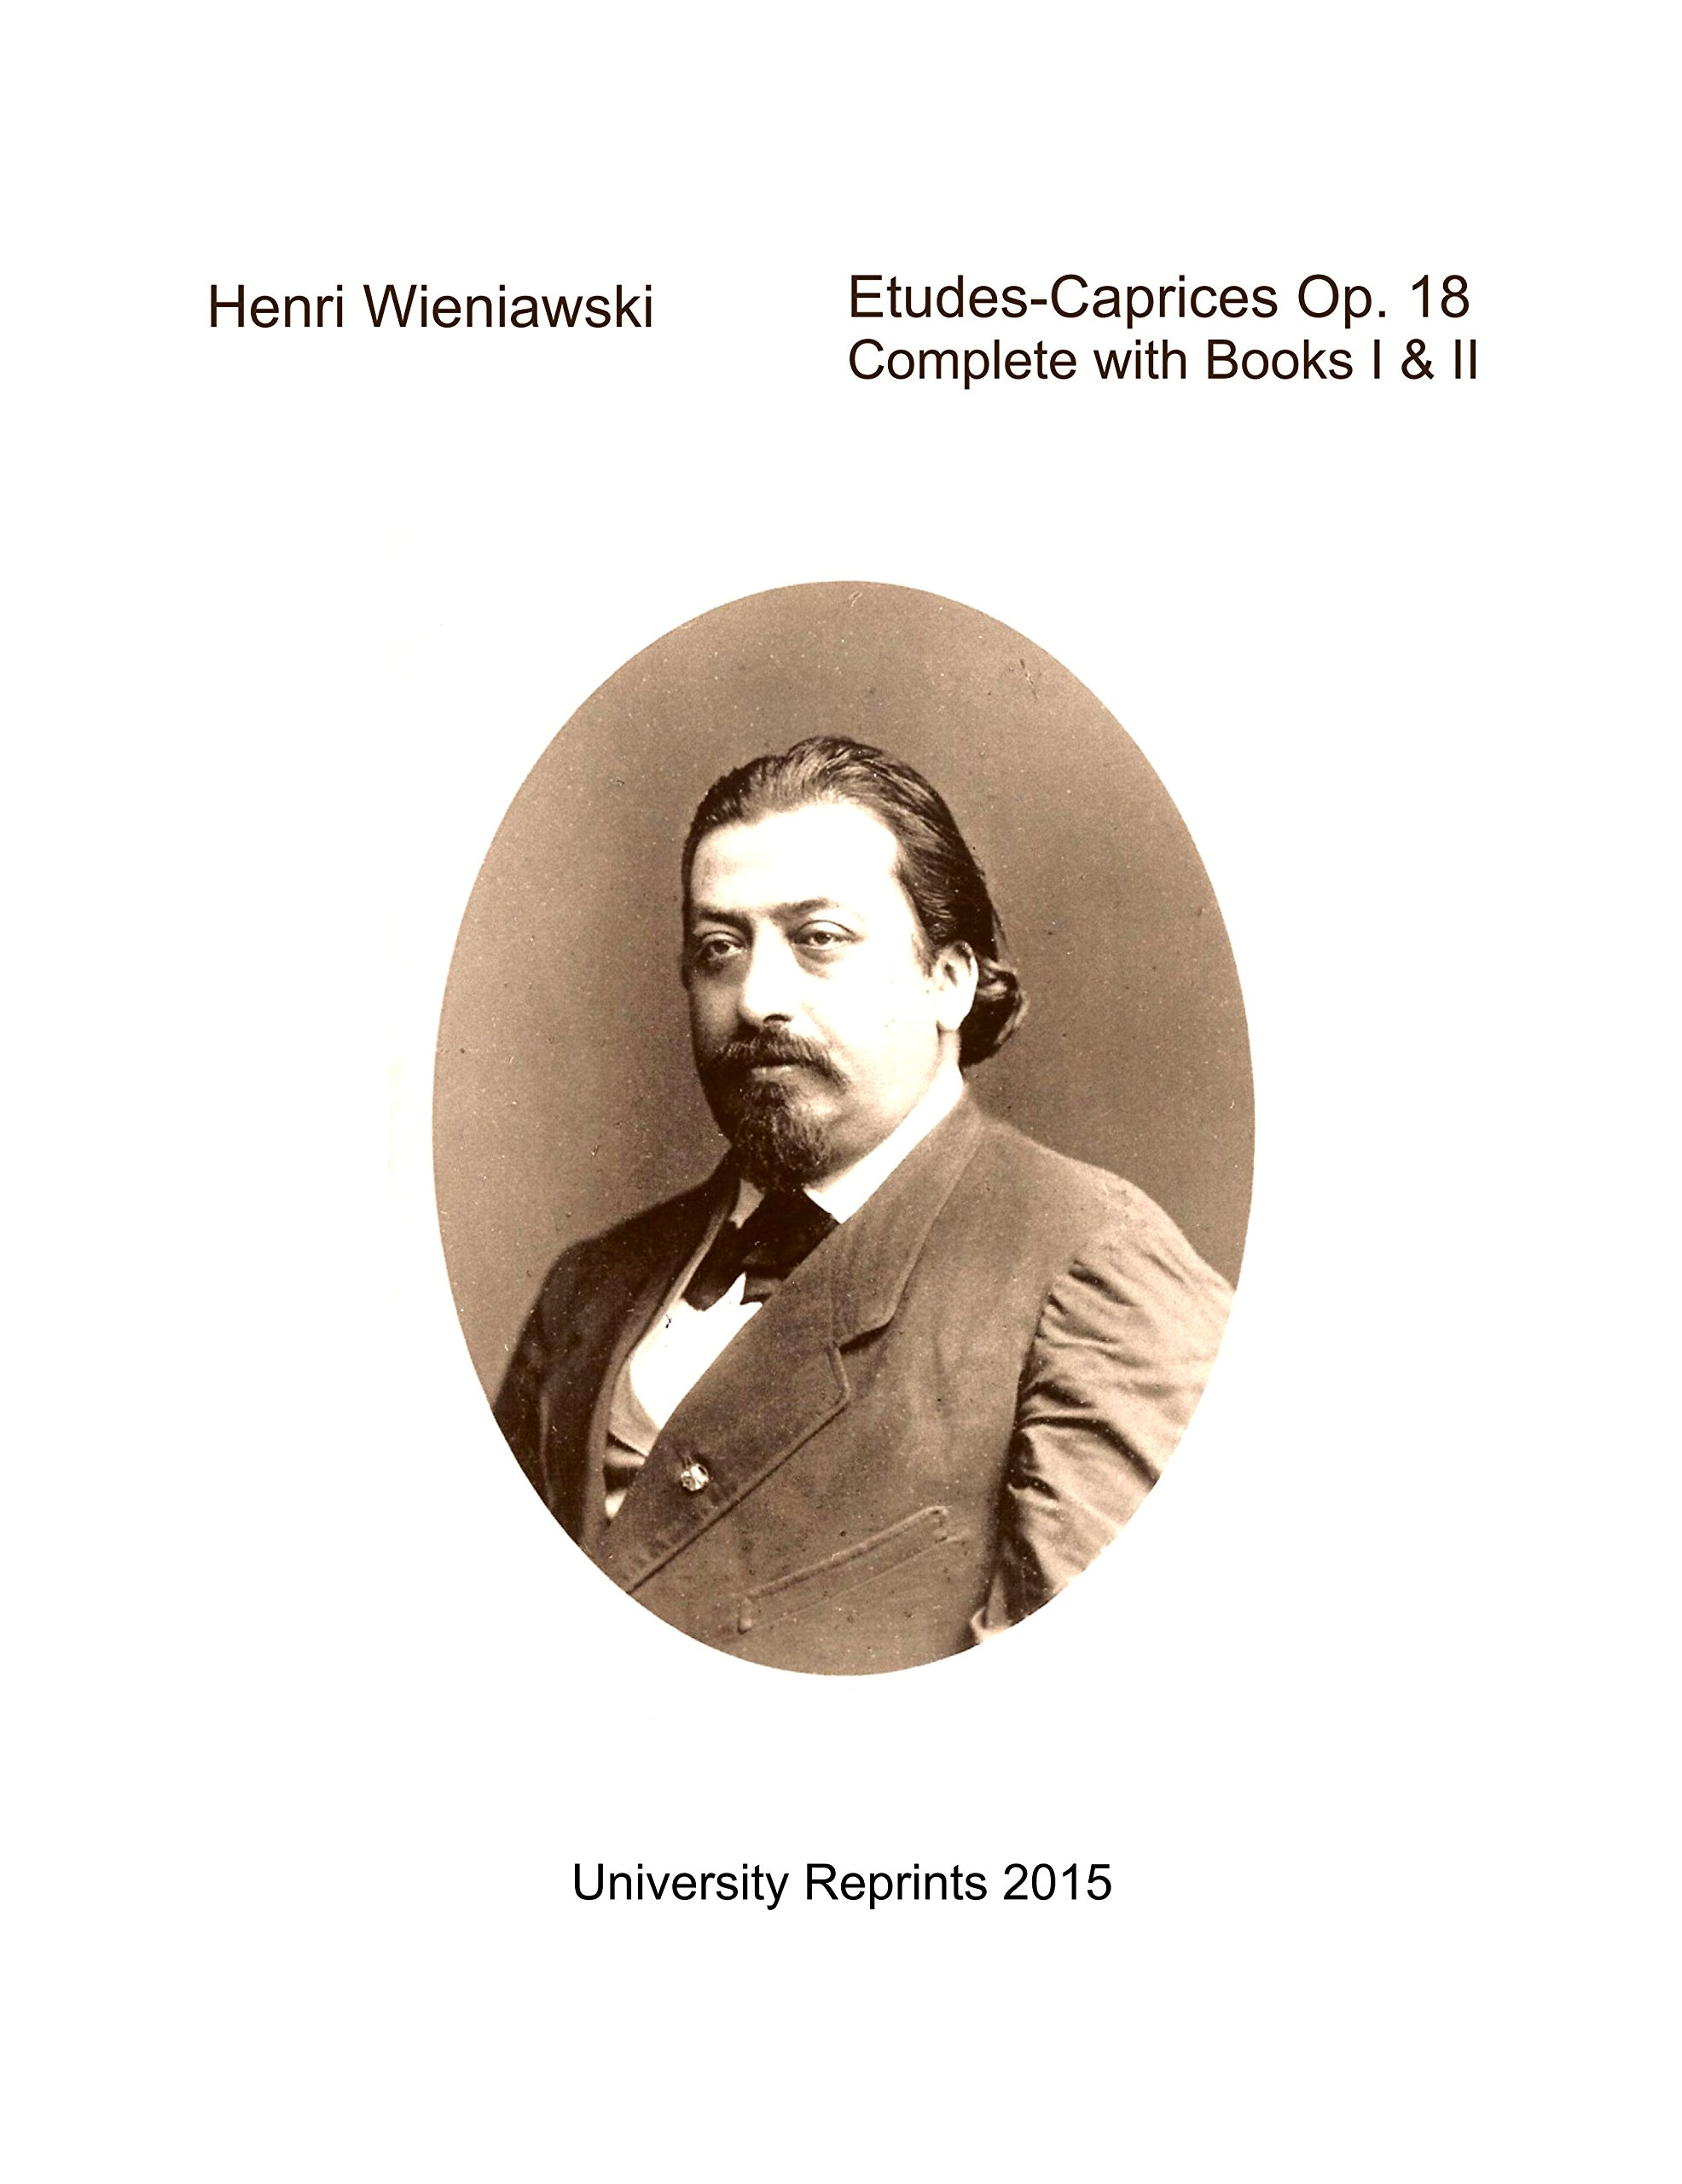 Etudes-Caprices Op. 18 Complete with Books One and Two by Henri Wieniawski. Violin Study. [Student Loose Leaf Facsimile Edition. Re-Imaged from Original for Greater Clarity. 2015] PDF